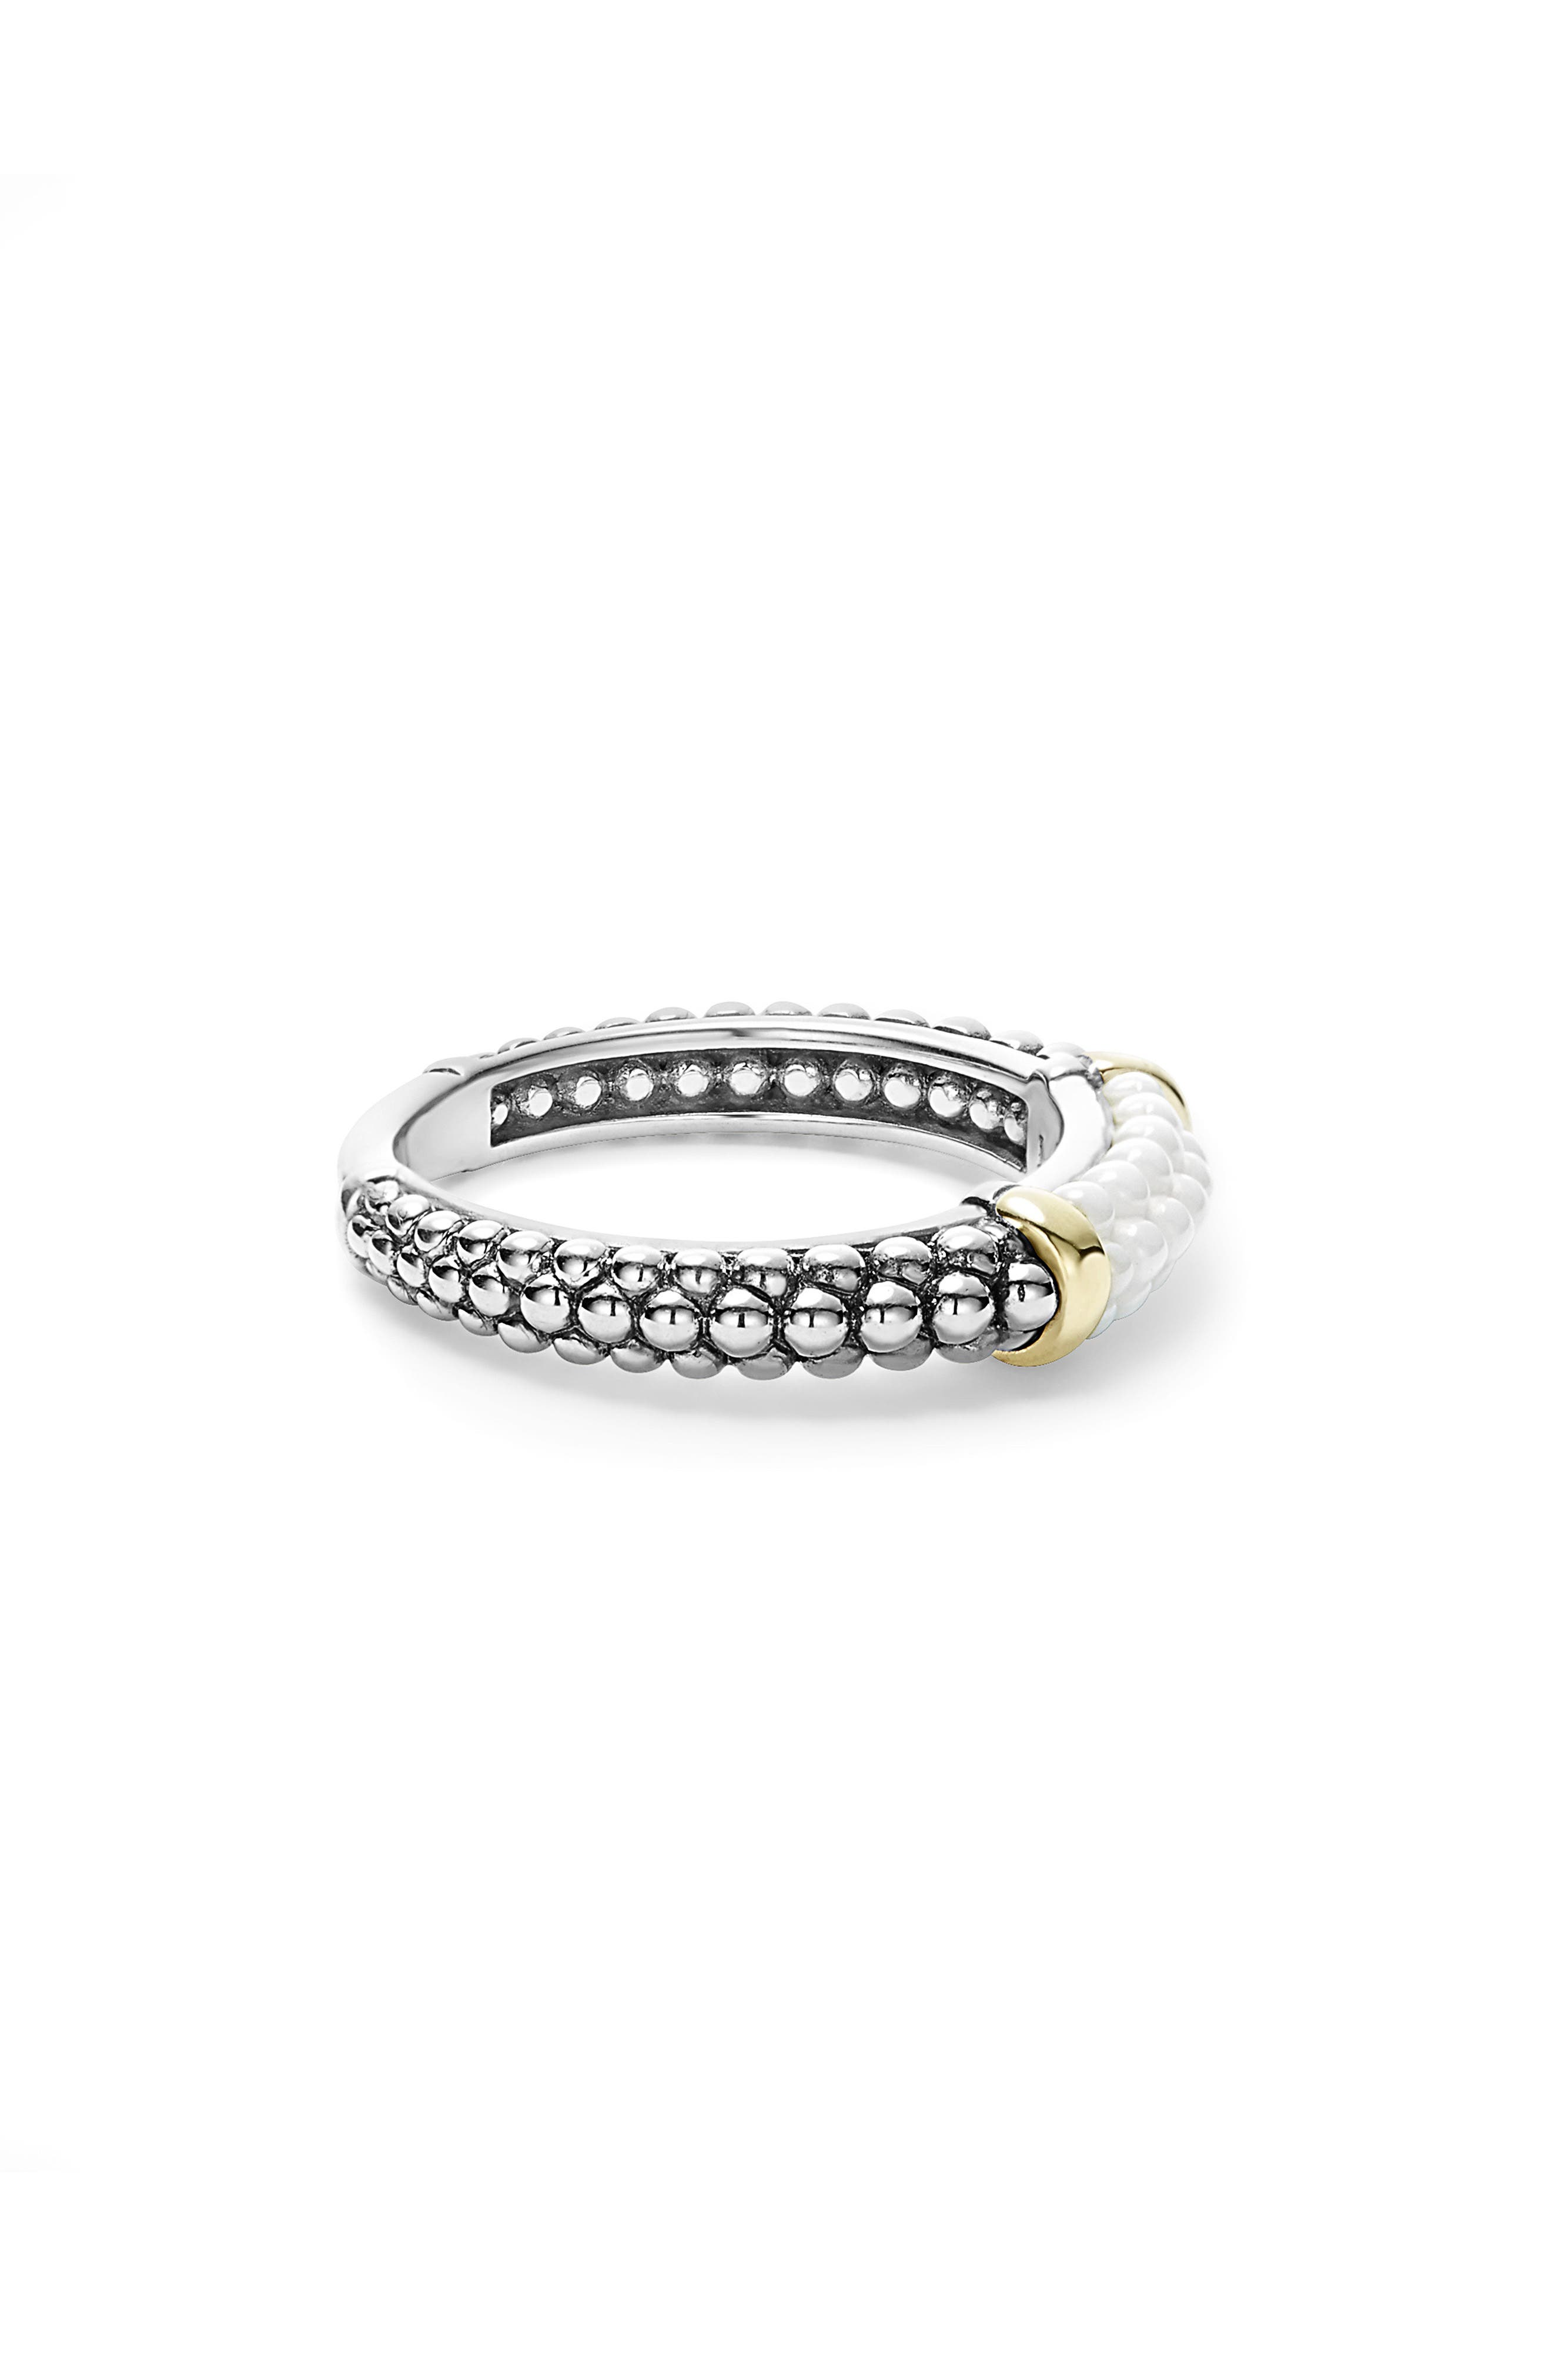 'Caviar' Stacking Ring,                             Alternate thumbnail 3, color,                             WHITE/ GOLD